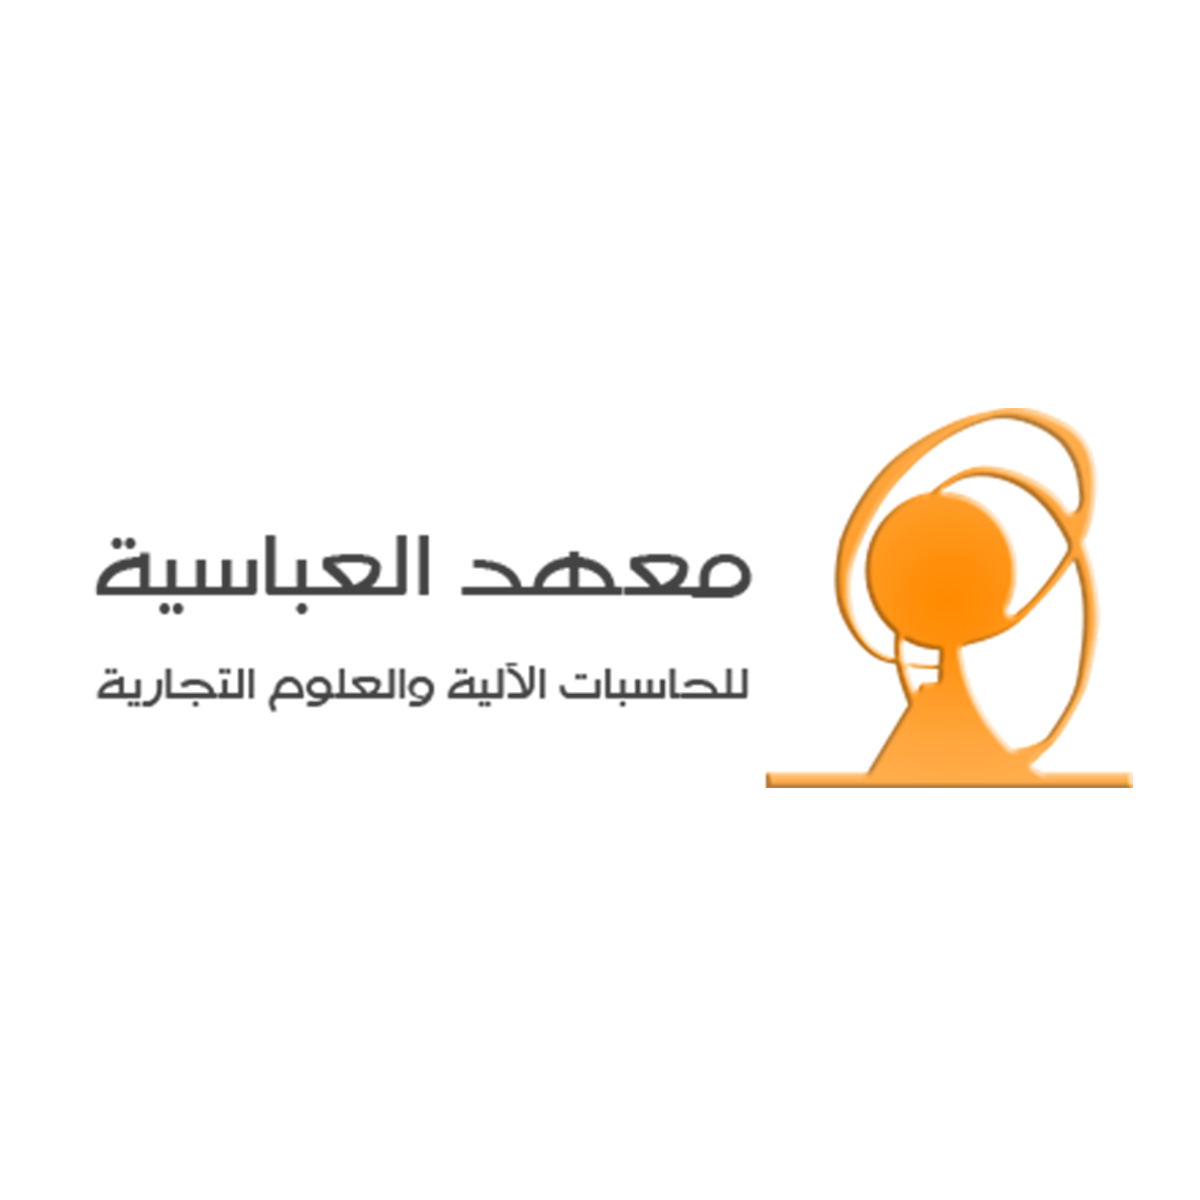 Al-Abbasia Institute for Computer and Commercial Sciences